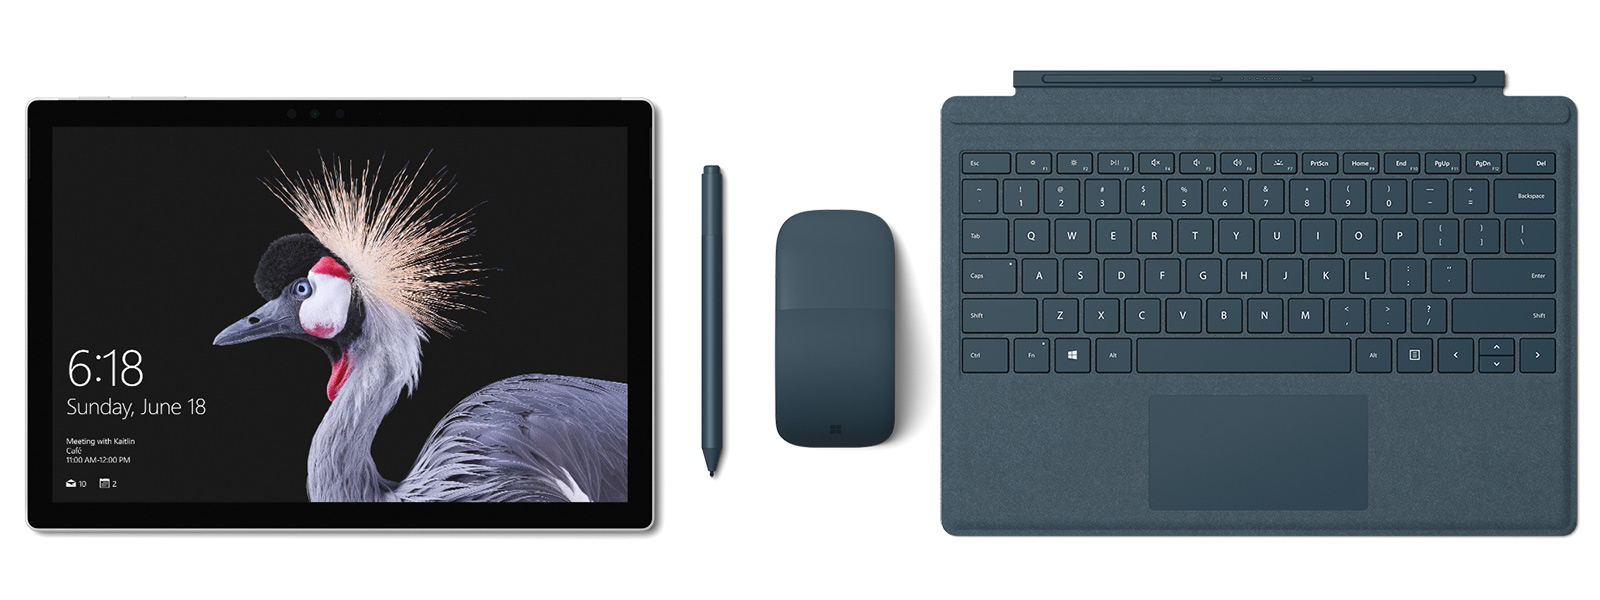 Image de Surface Pro avec le clavier Surface Pro Signature Type Cover, le stylet Surface et la souris Surface Arc Mouse couleur bleu cobalt. Avec le stylet Surface.